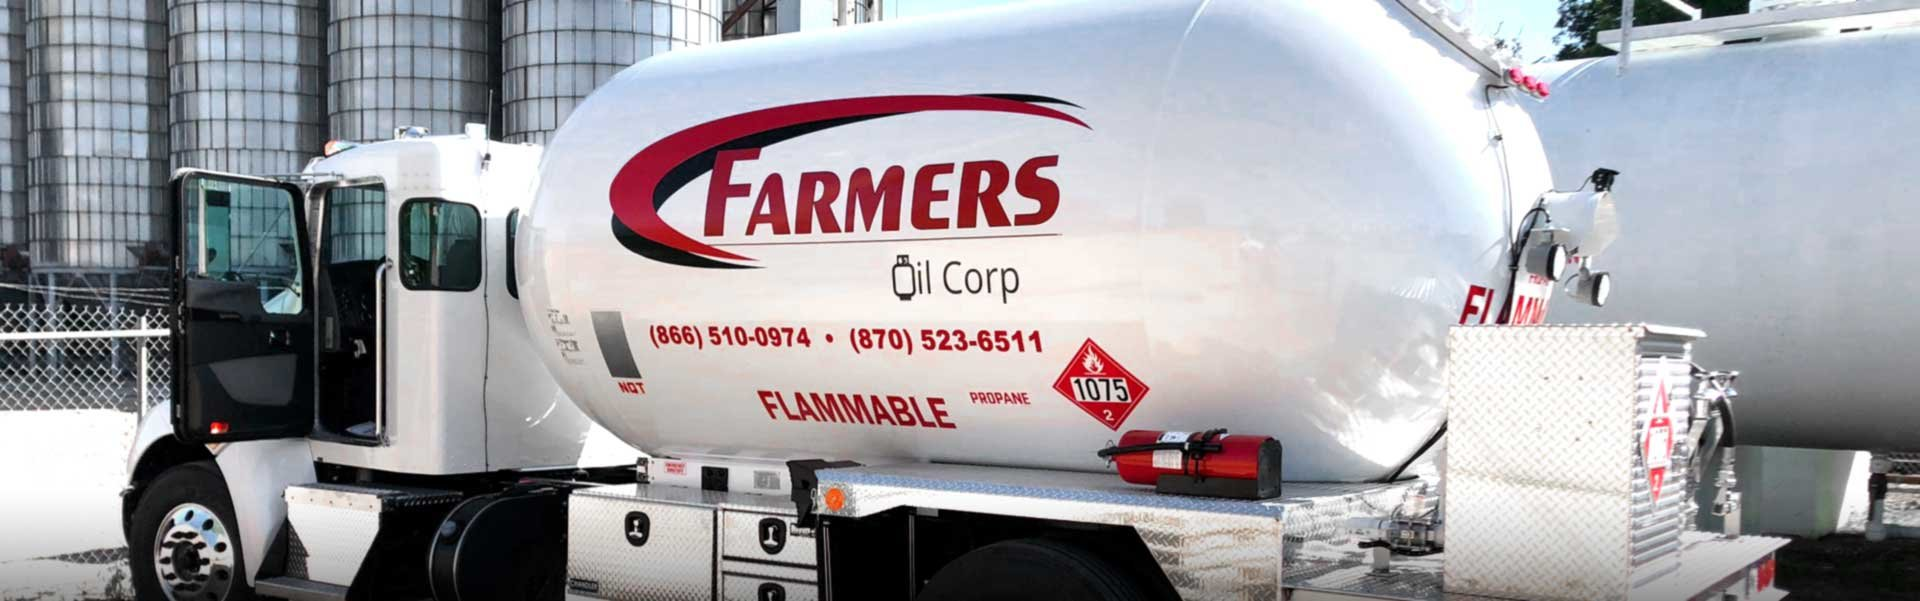 Farmers Oil Corp liquid propane gas truck